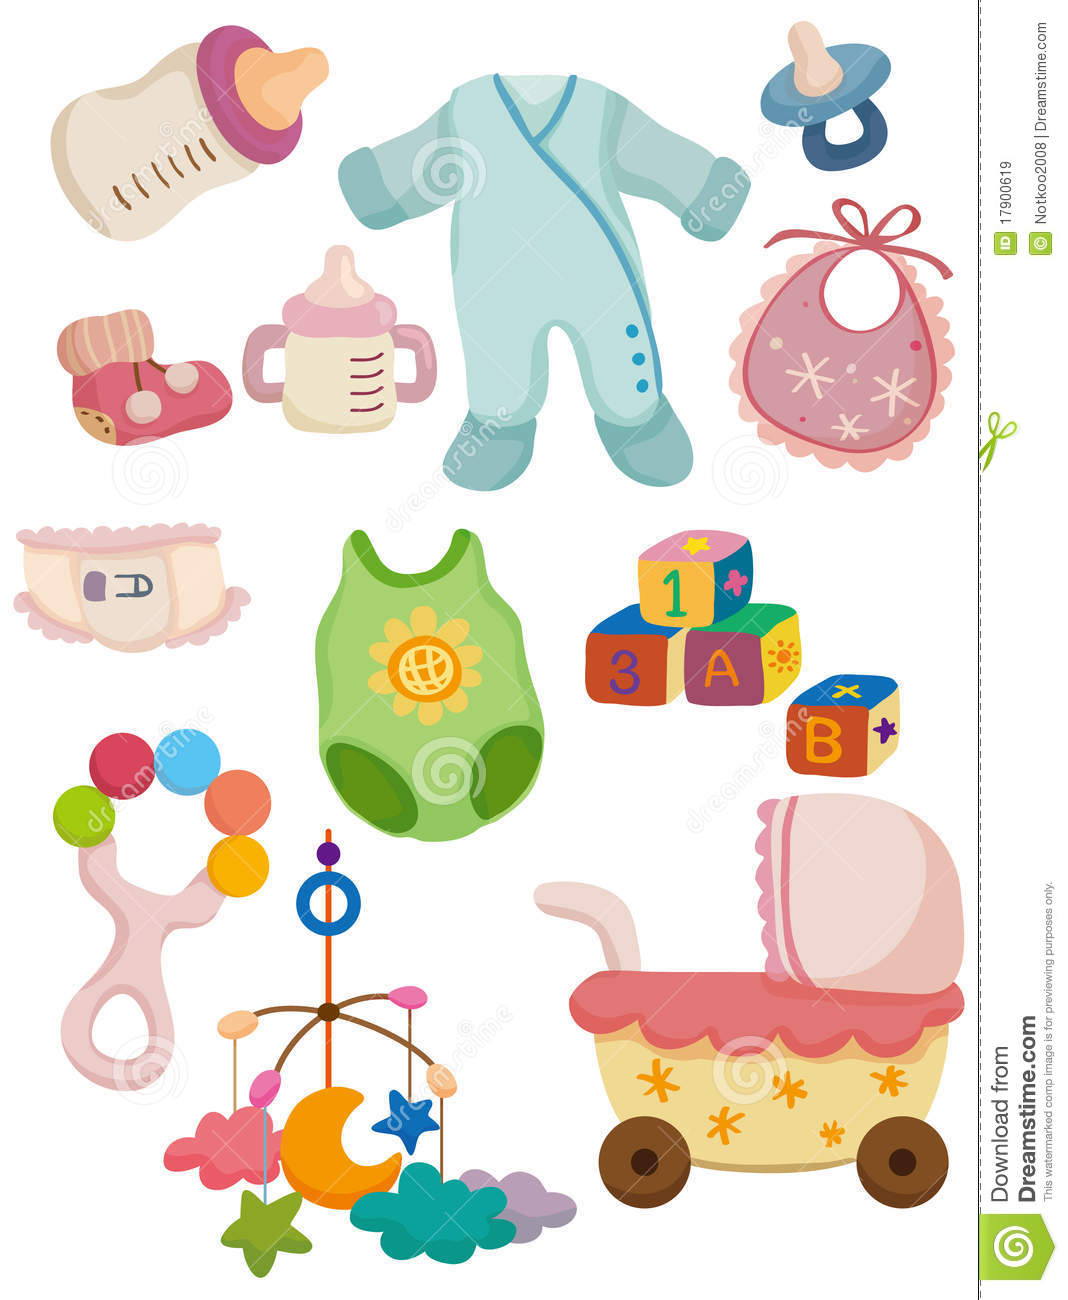 Cartoon baby stuff icon stock vector Illustration of